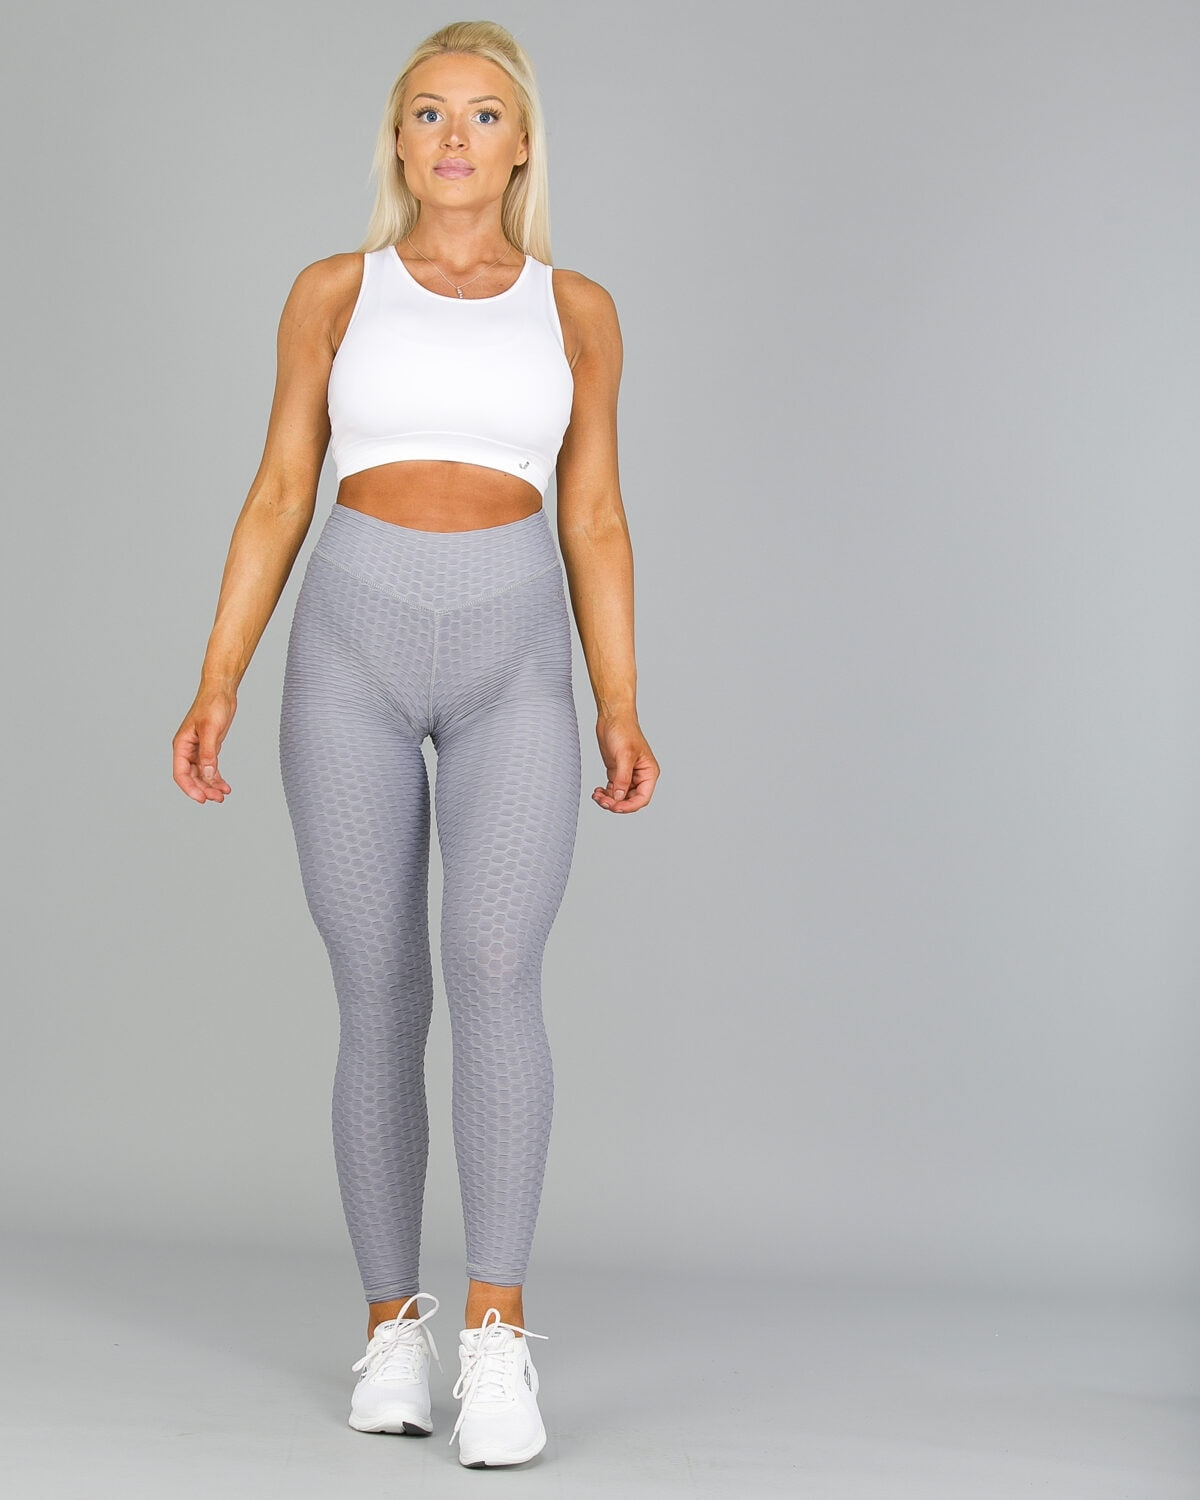 ABS2B-Fitness-Zero-Flaw-High-Rise-Leggings-Silver18-1200×1500